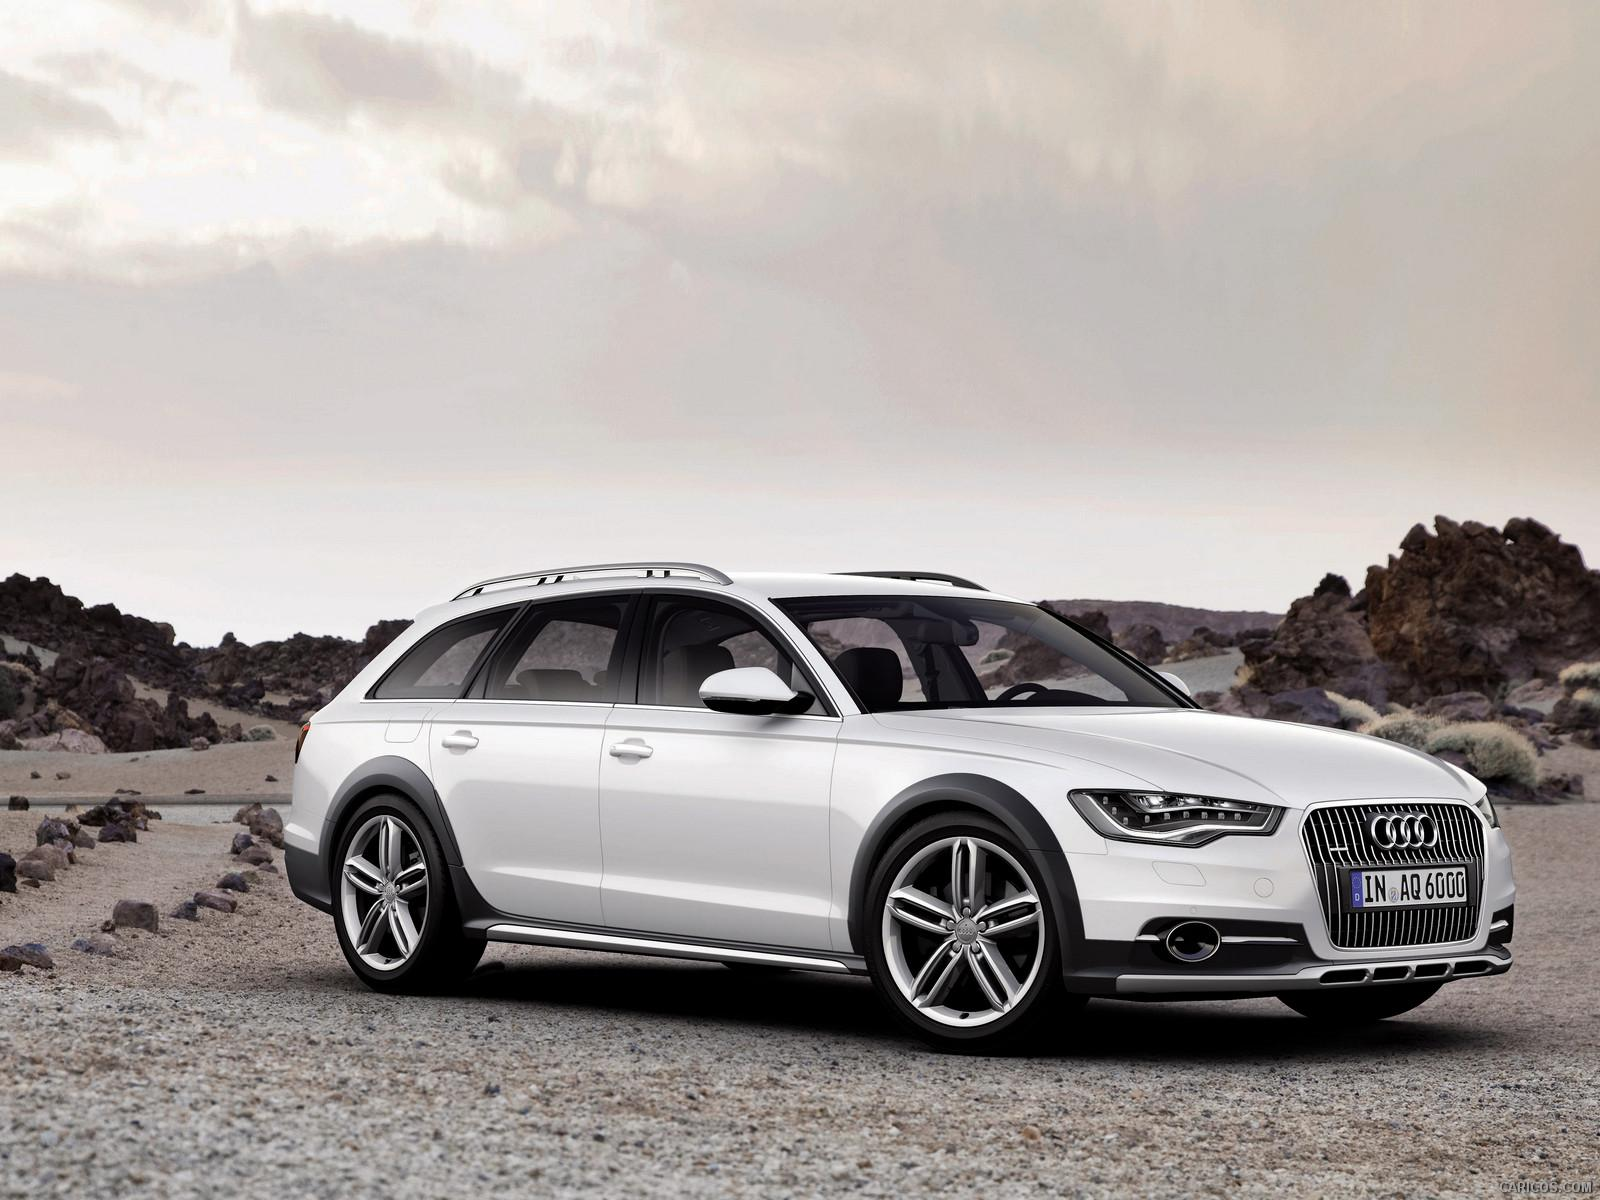 2013 Audi A6 AllRoad - Front | Wallpaper #2